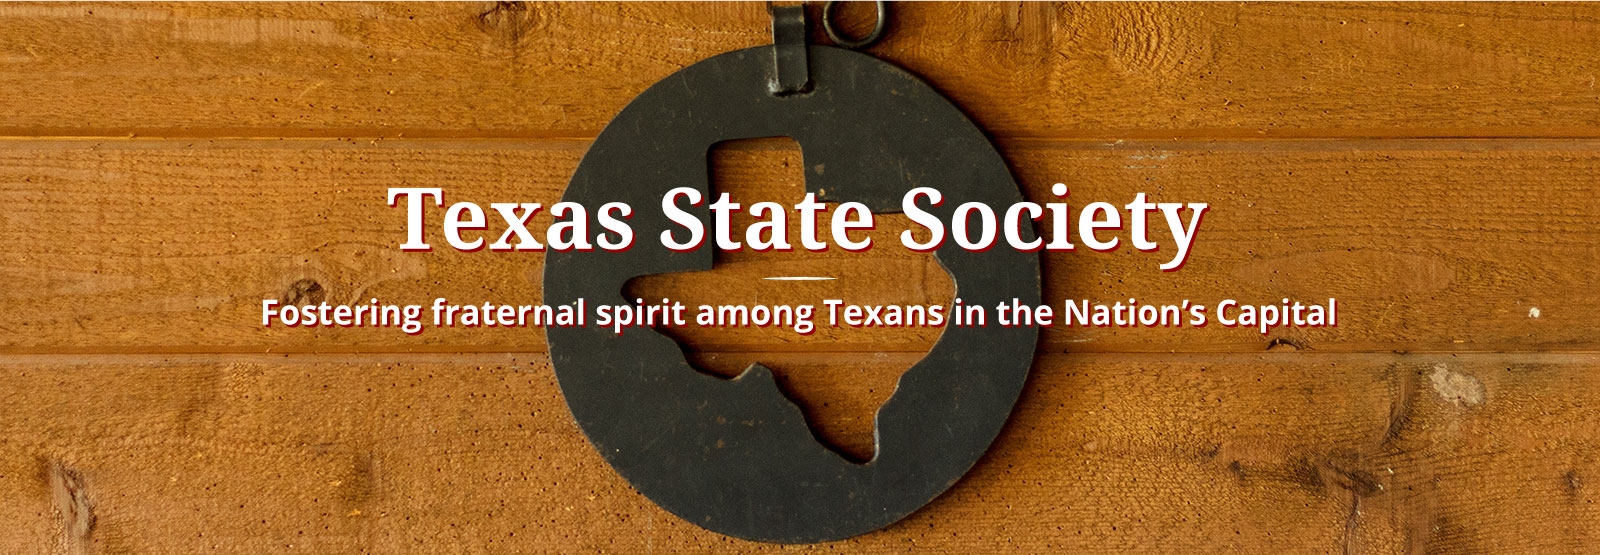 Texas State Society